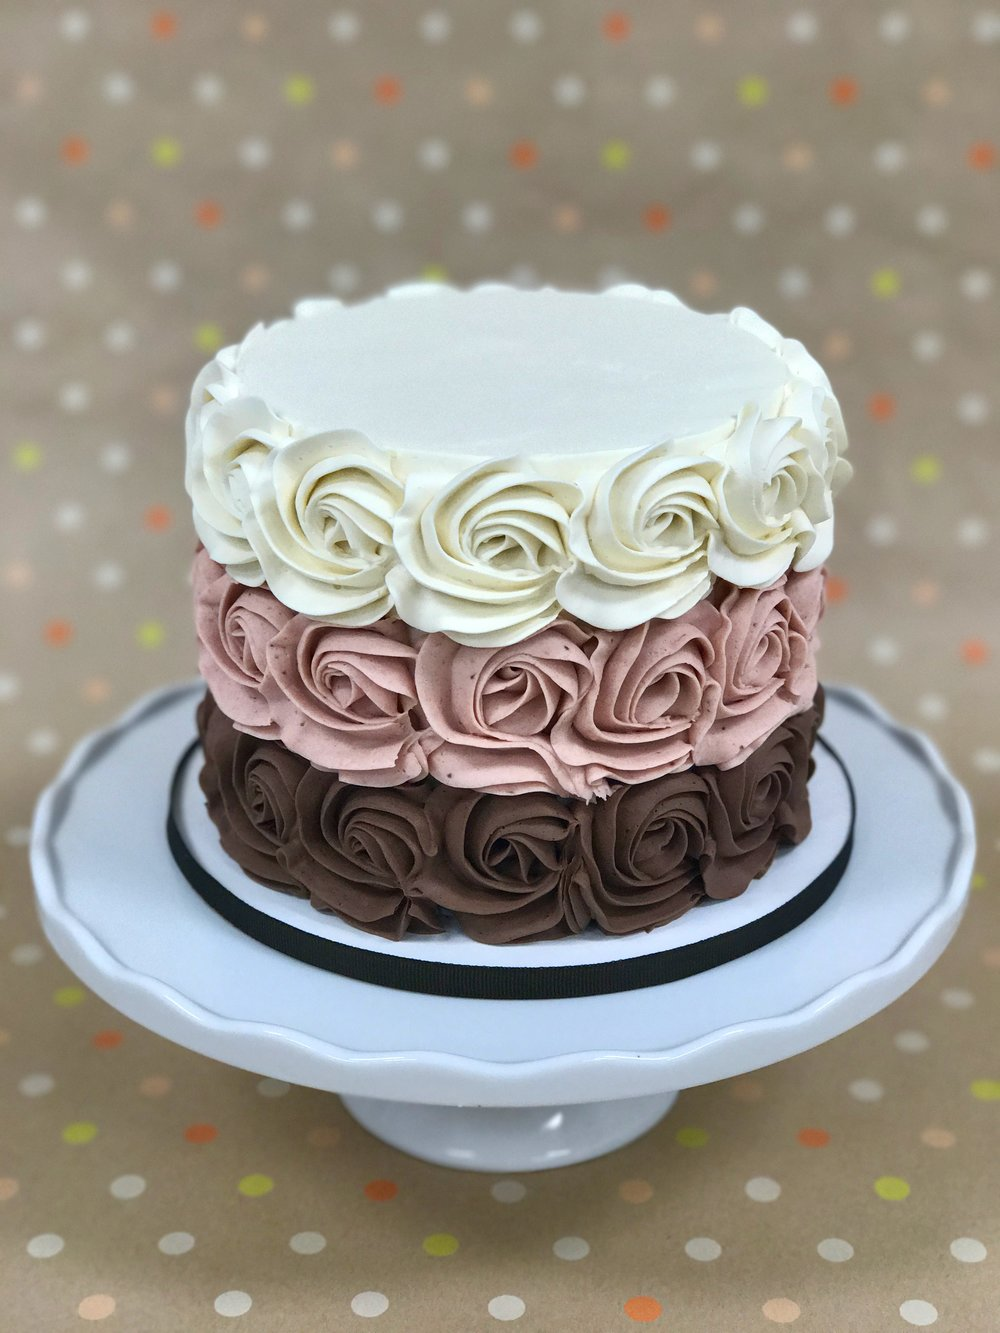 Neapolitan - Cake: Vanilla Bean and ChocolateFilling: Strawberry Swiss Meringue ButtercreamFrosting: Vanilla, Strawberry and Chocolate Swiss Meringue Buttercreams